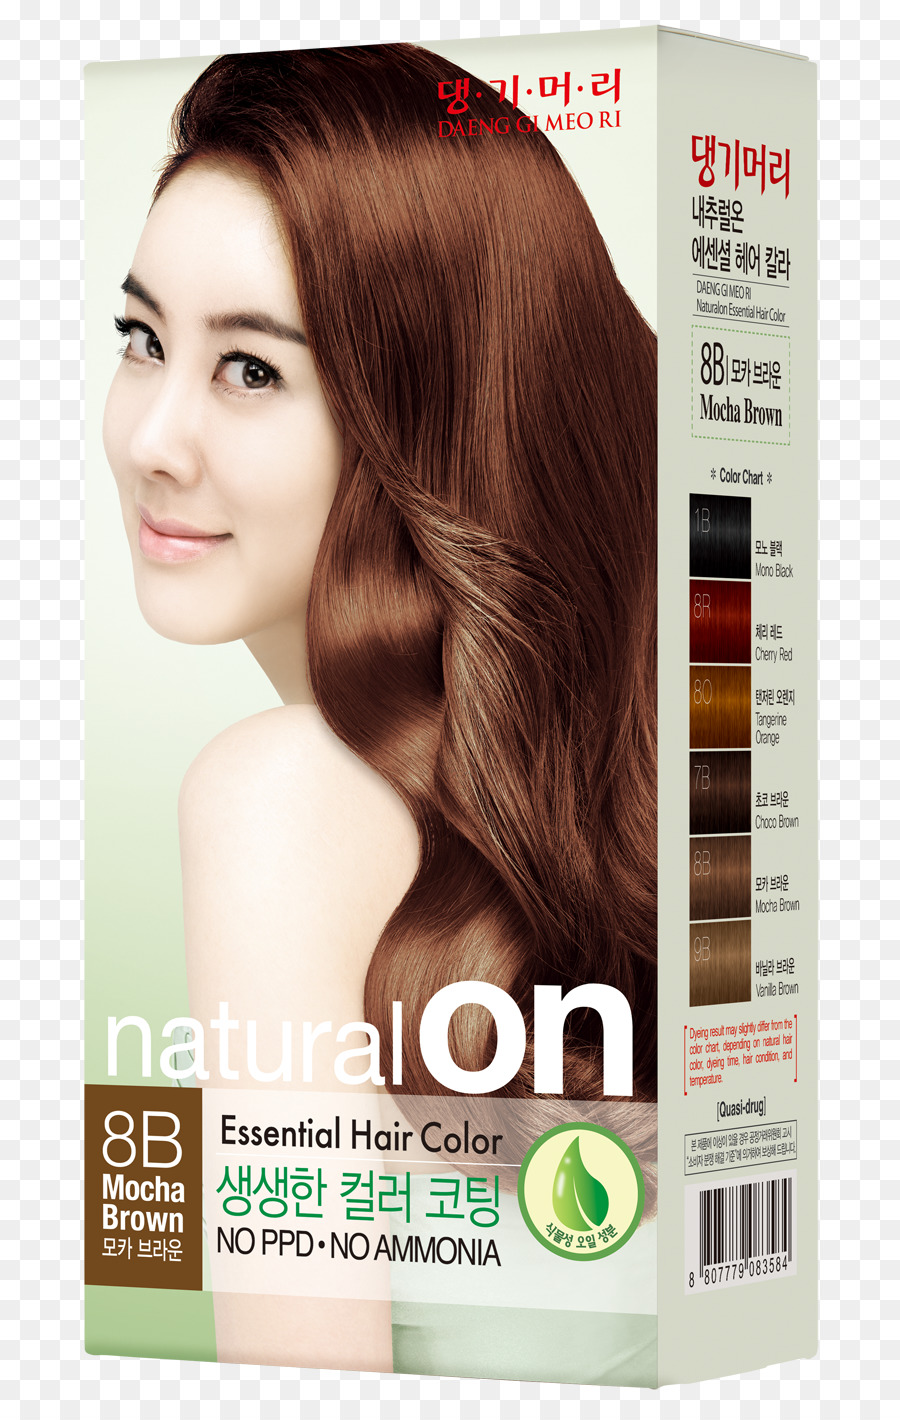 Hair Coloring Human Hair Color Hairstyle Hair Care Hair Png